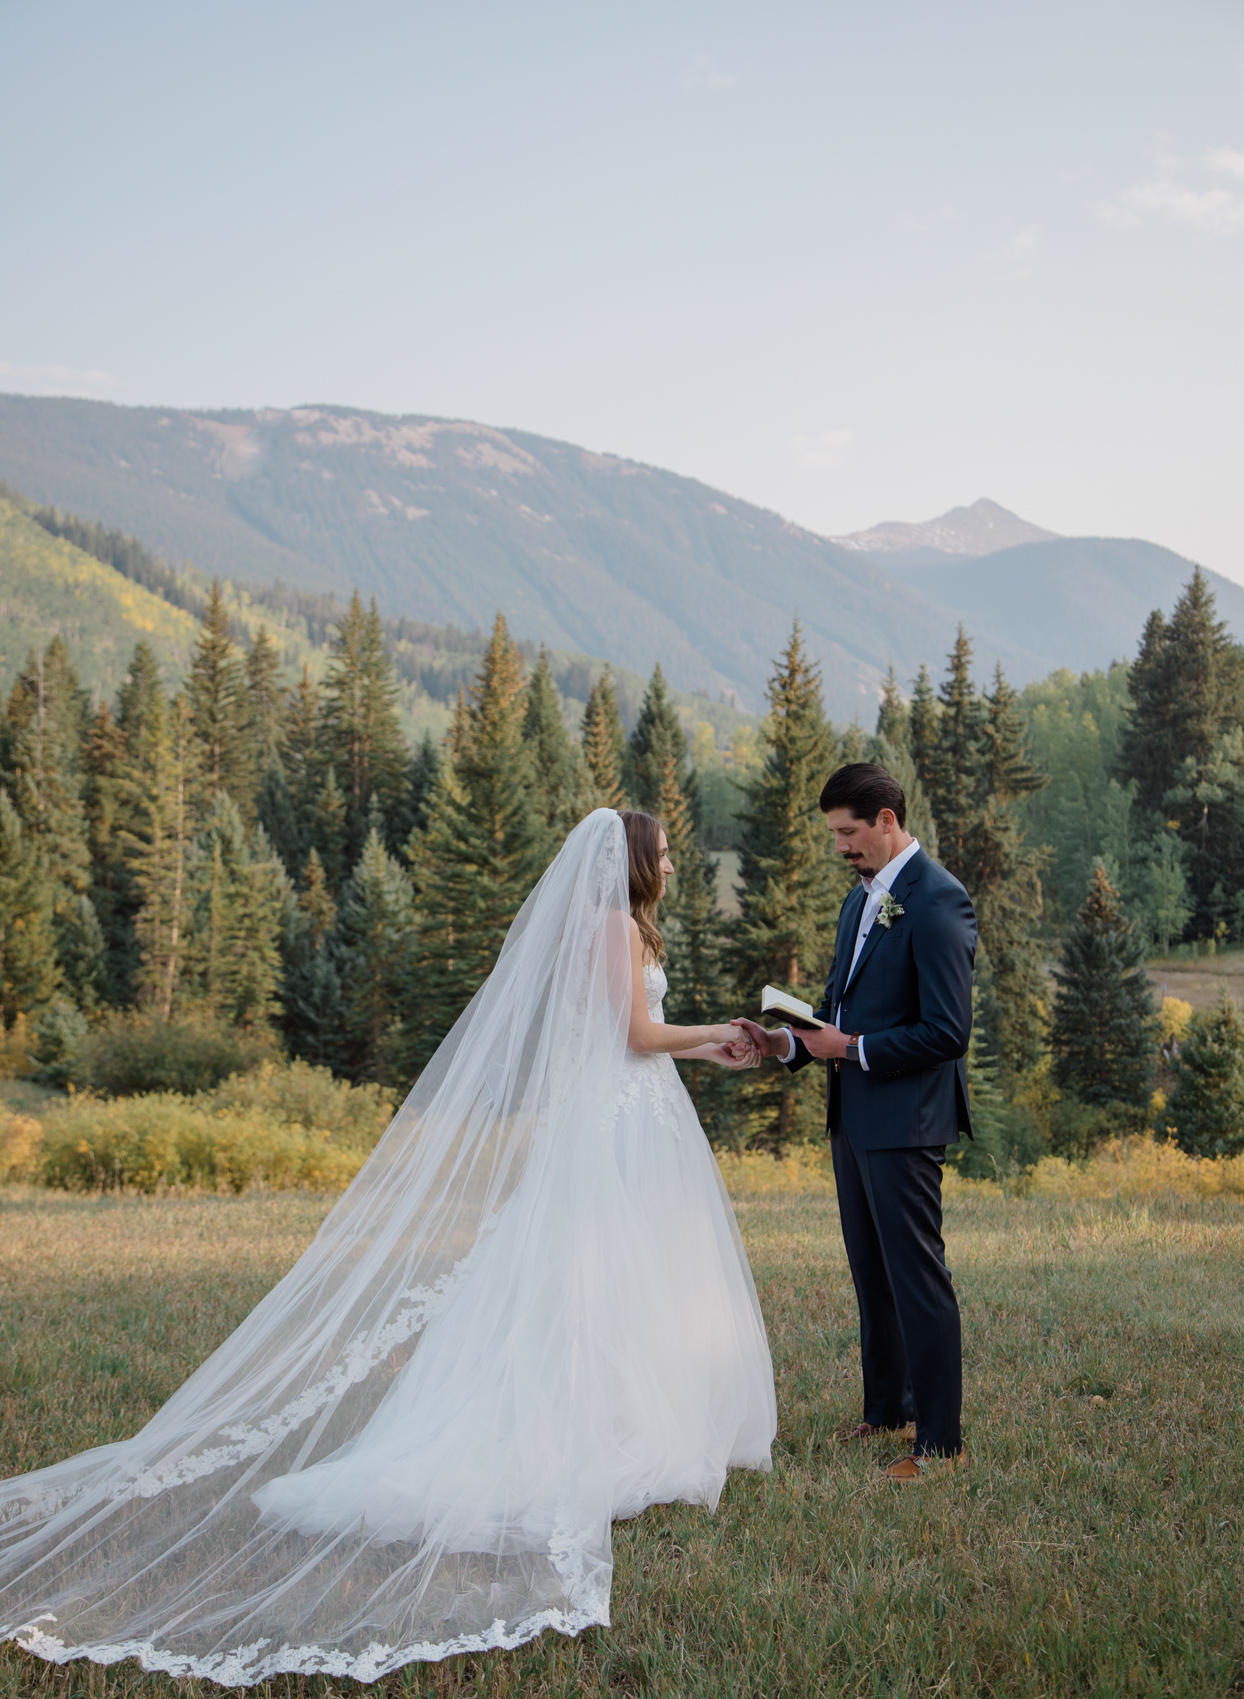 Bride and groom exchanging vows in mountains